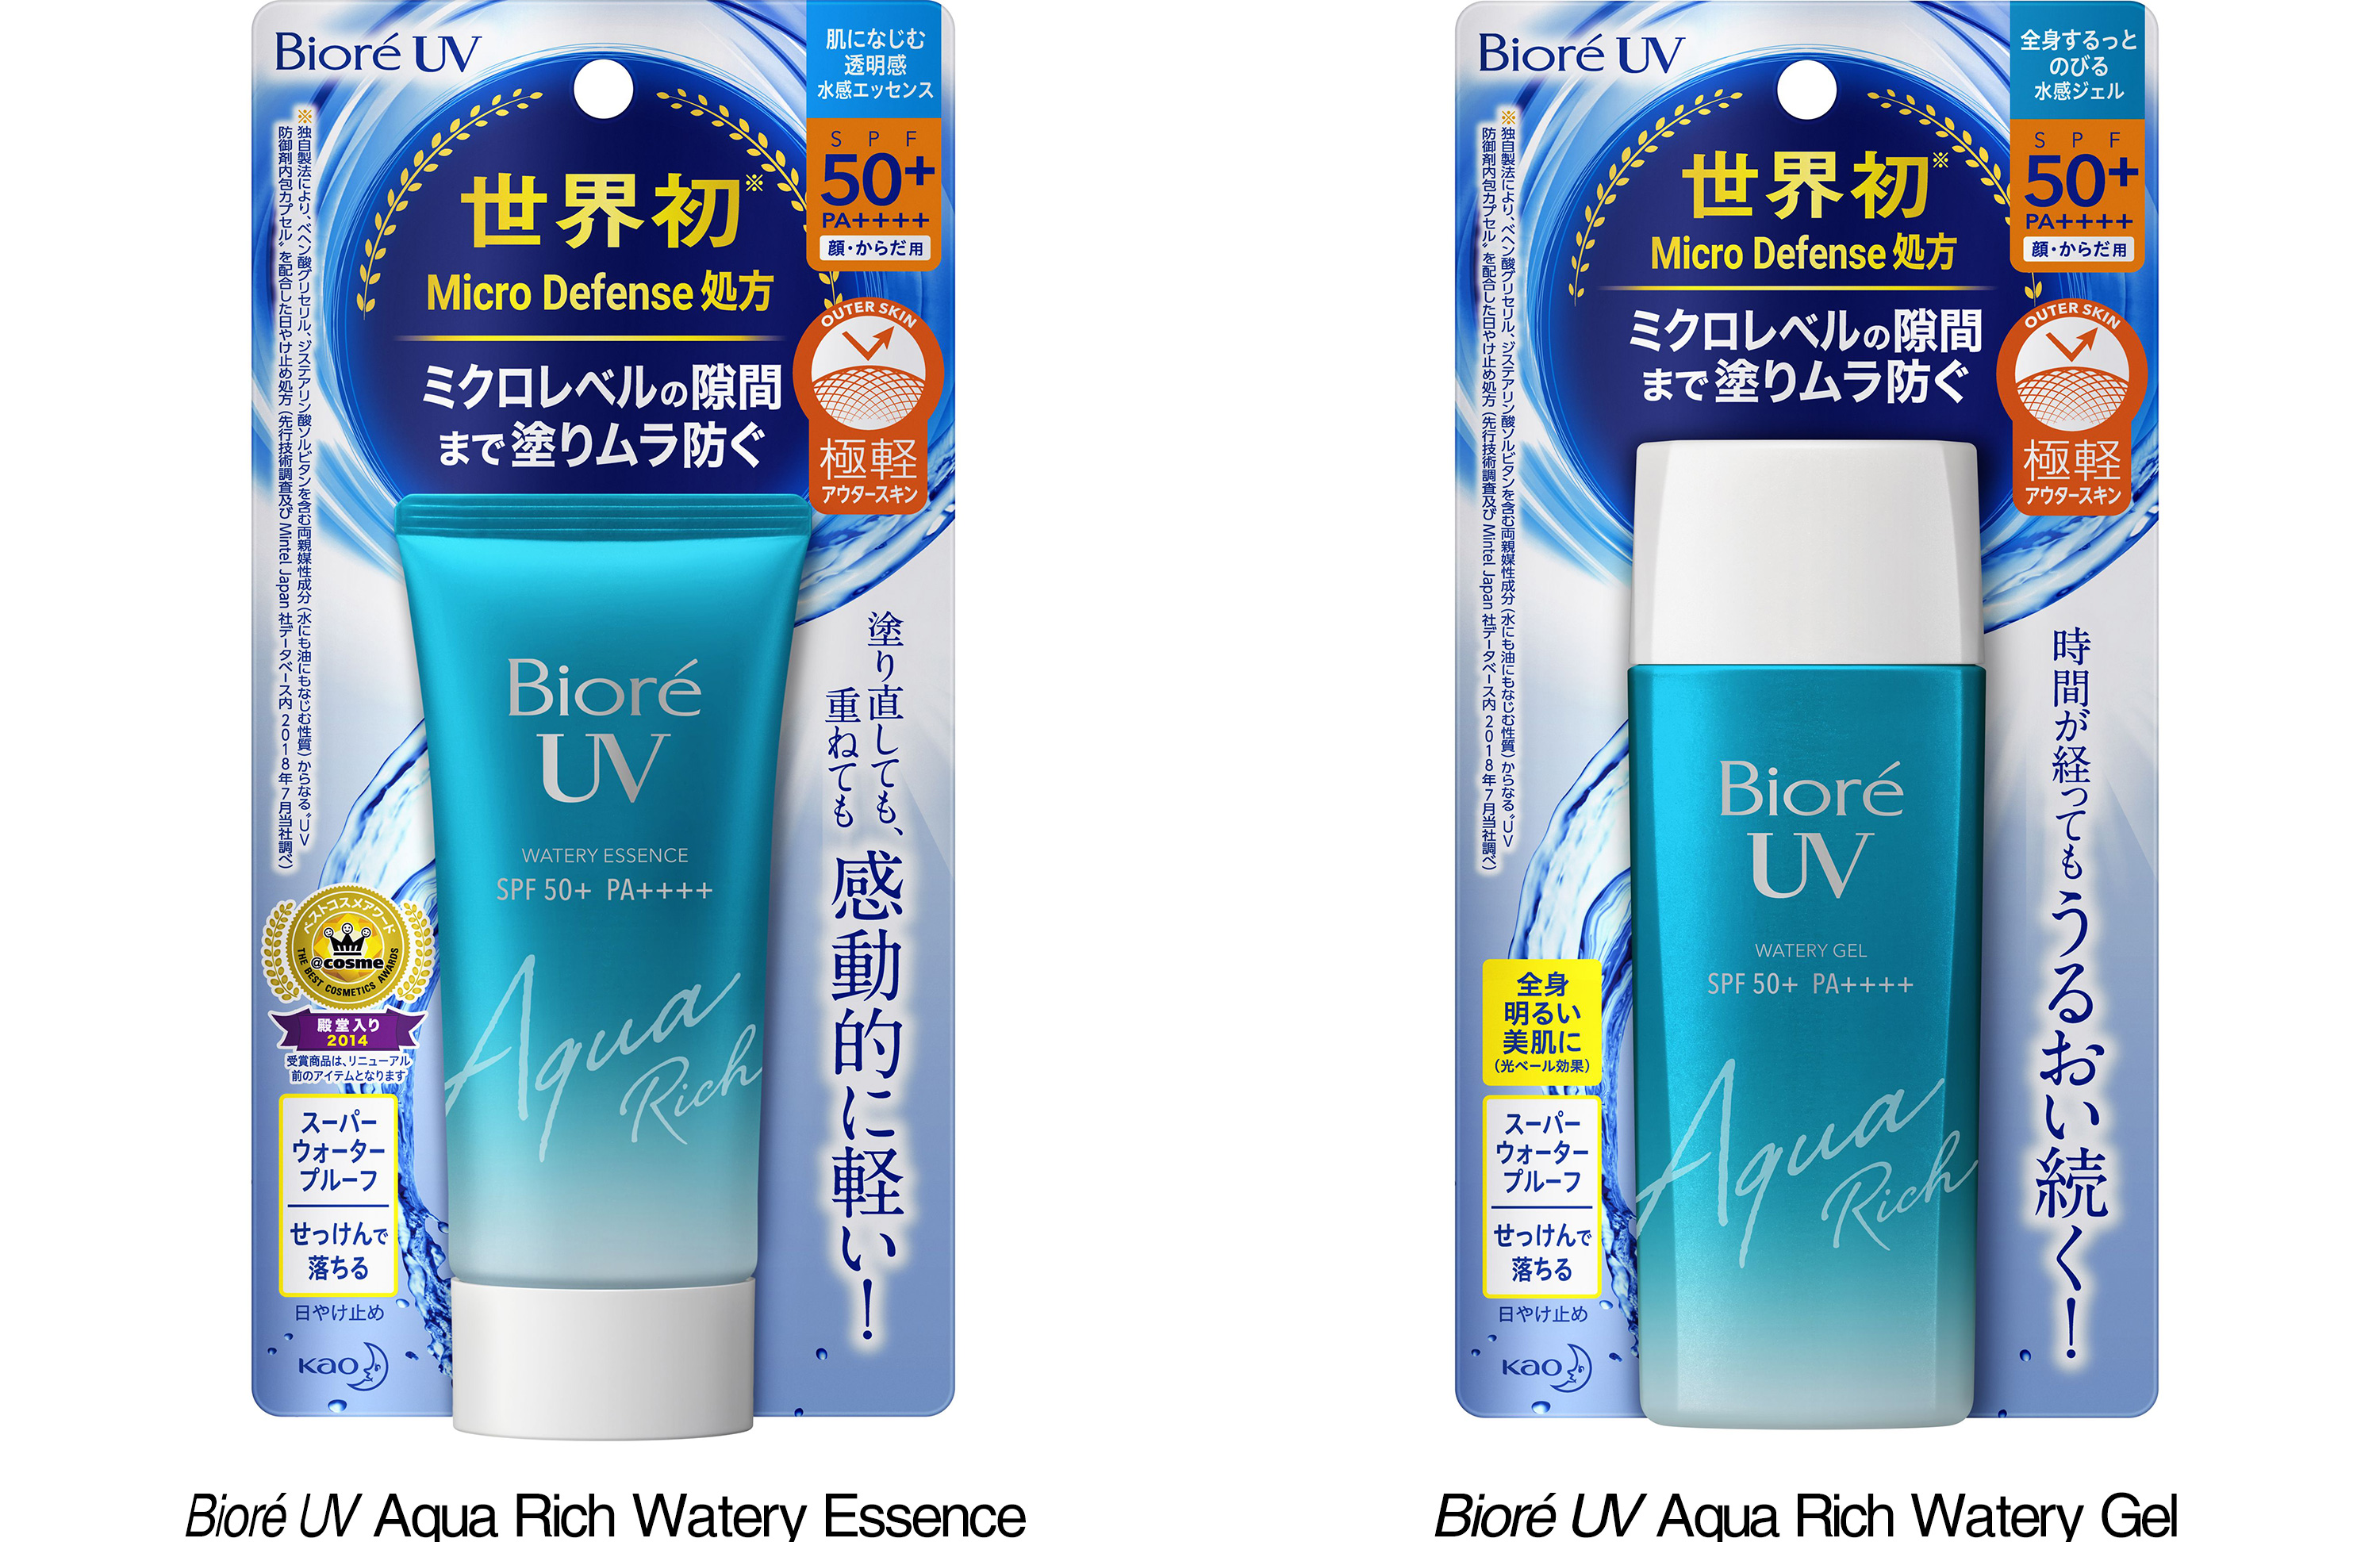 WorldPressOnline_biorГ©-uv-aqua-rich-watery-essence-and-biorГ©-uv-aqua-rich-watery-gel-two-water-based-sunscreens-that-combine-strong-uv-protection-with-l